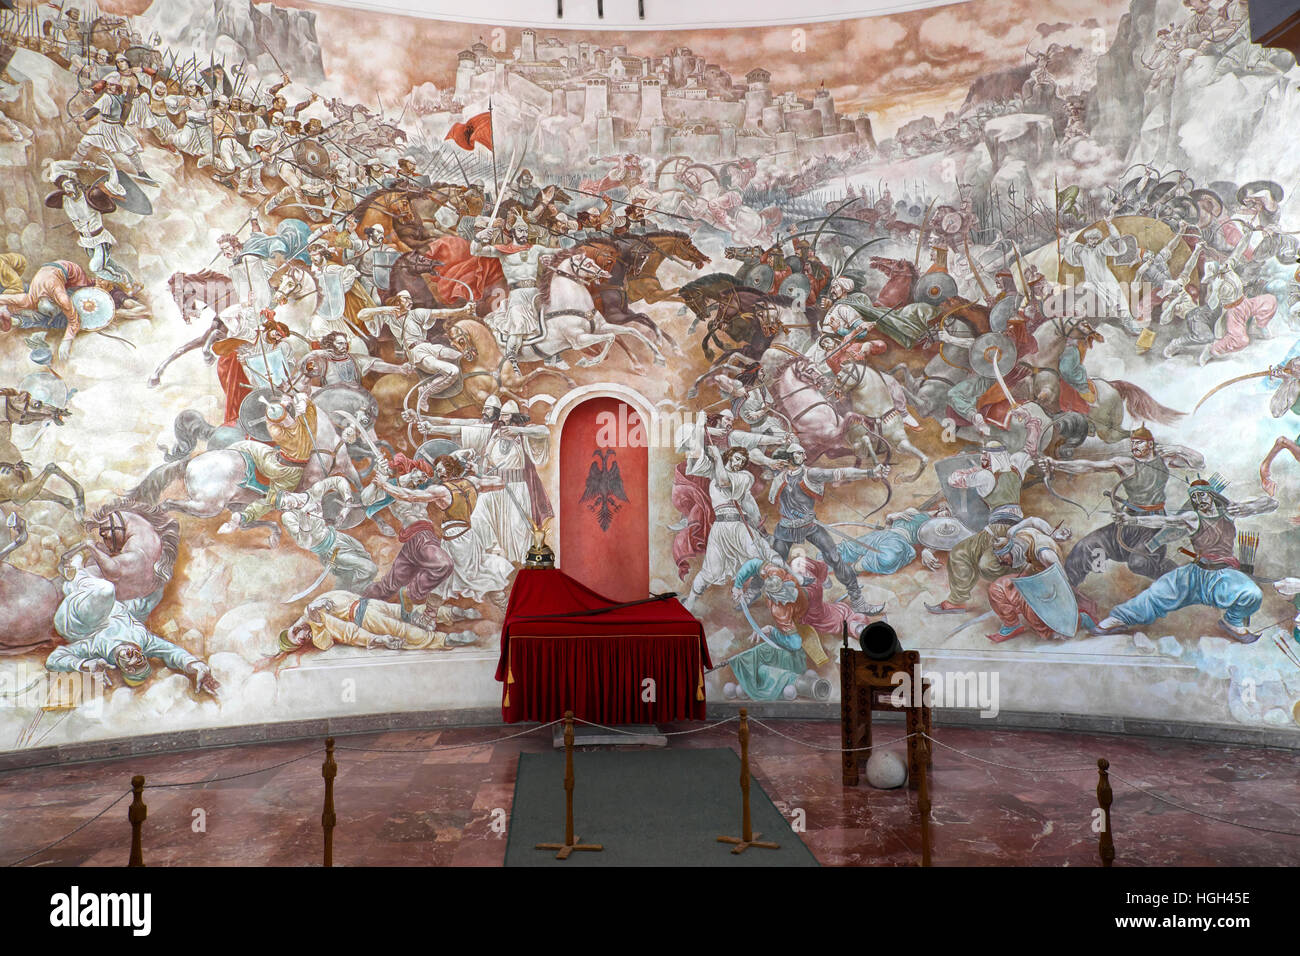 Painting of The Battle of Kosovo Polje, Skanderbeg Museum in Kruja Fortress, Durres, Albania - Stock Image